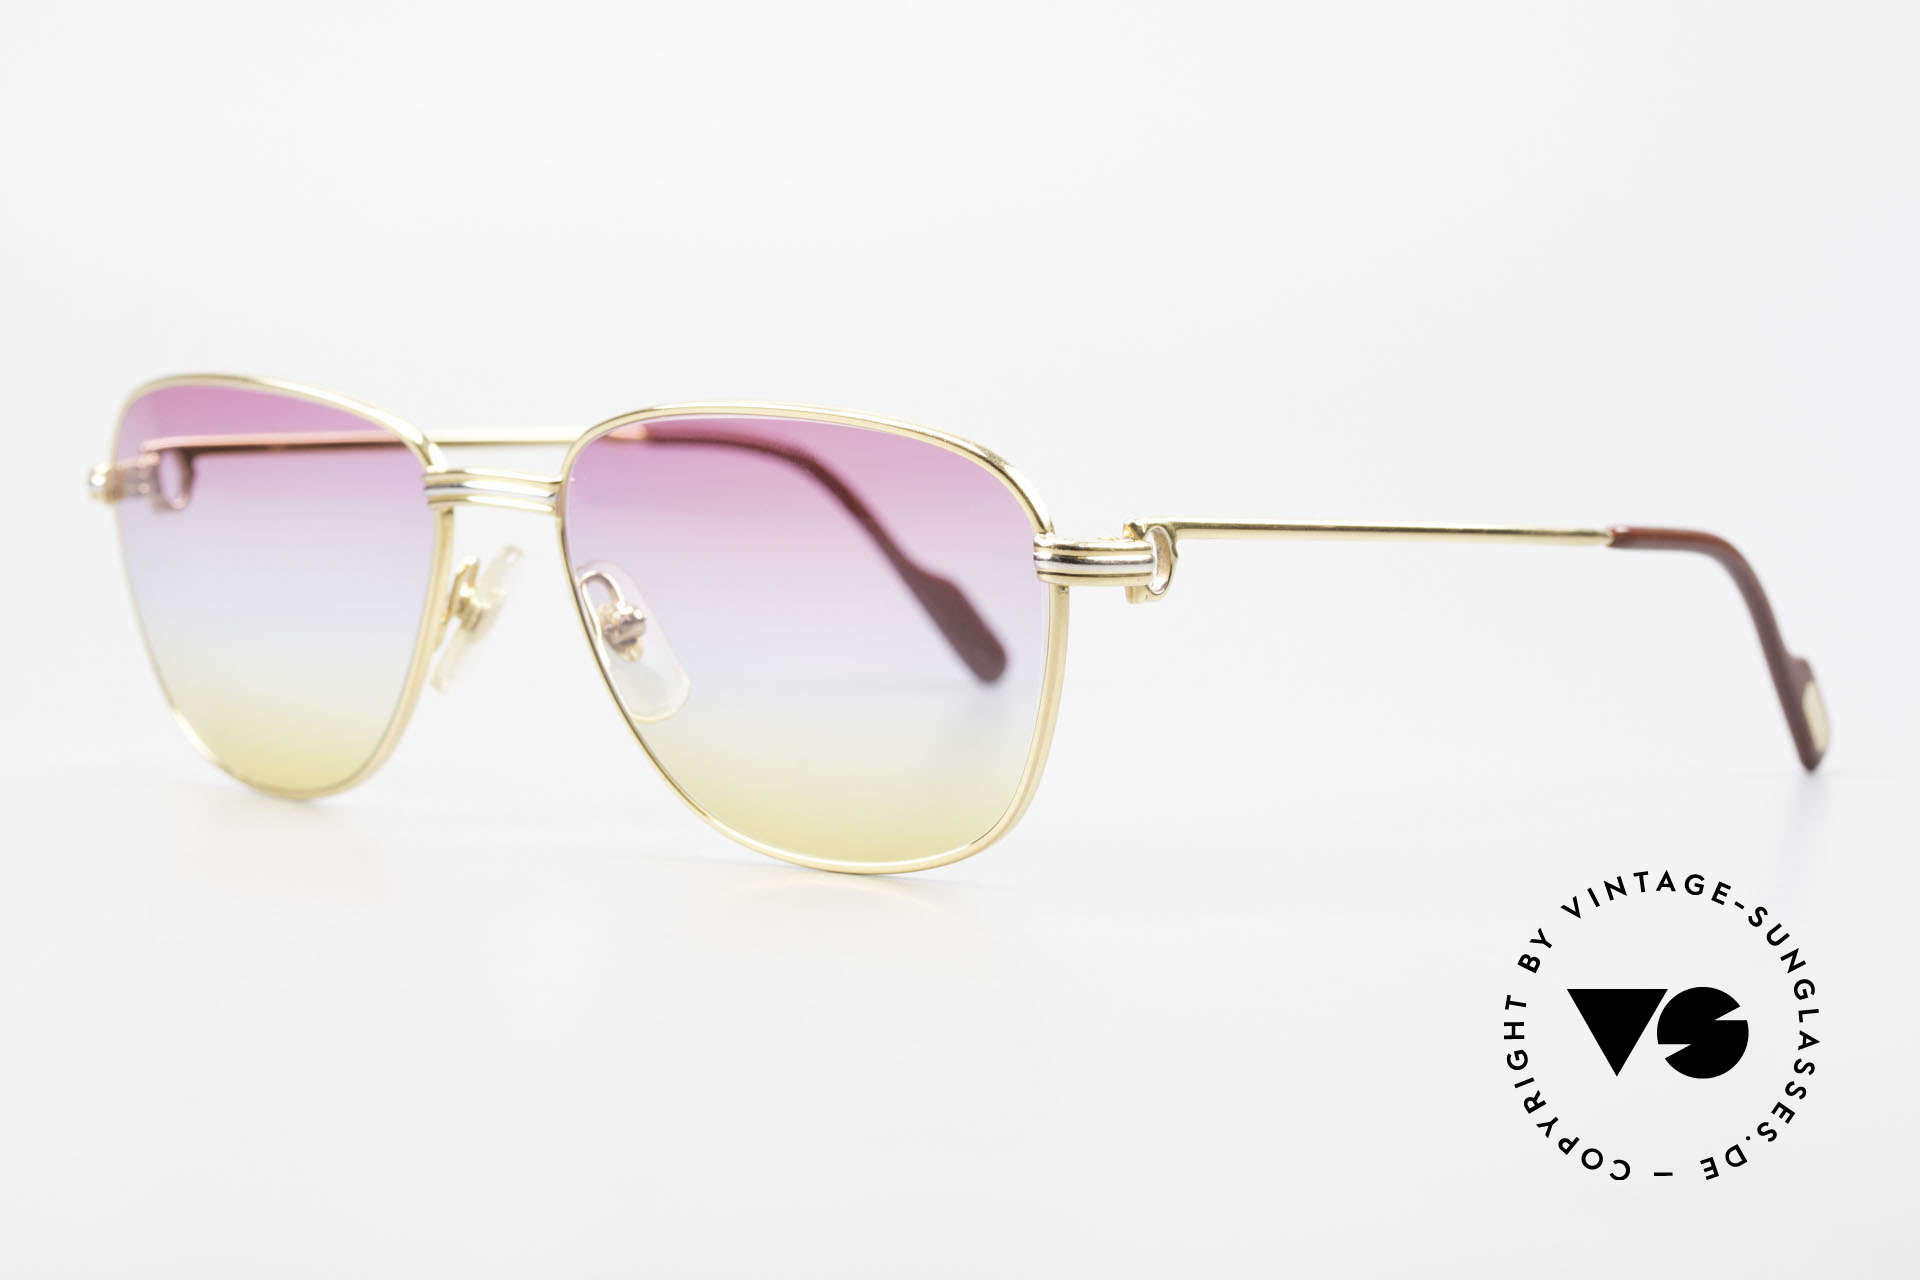 Cartier Courcelles Unique 90's Luxury Sunglasses, 22ct gold-plated (like all vintage Cartier ORIGINALS), Made for Men and Women